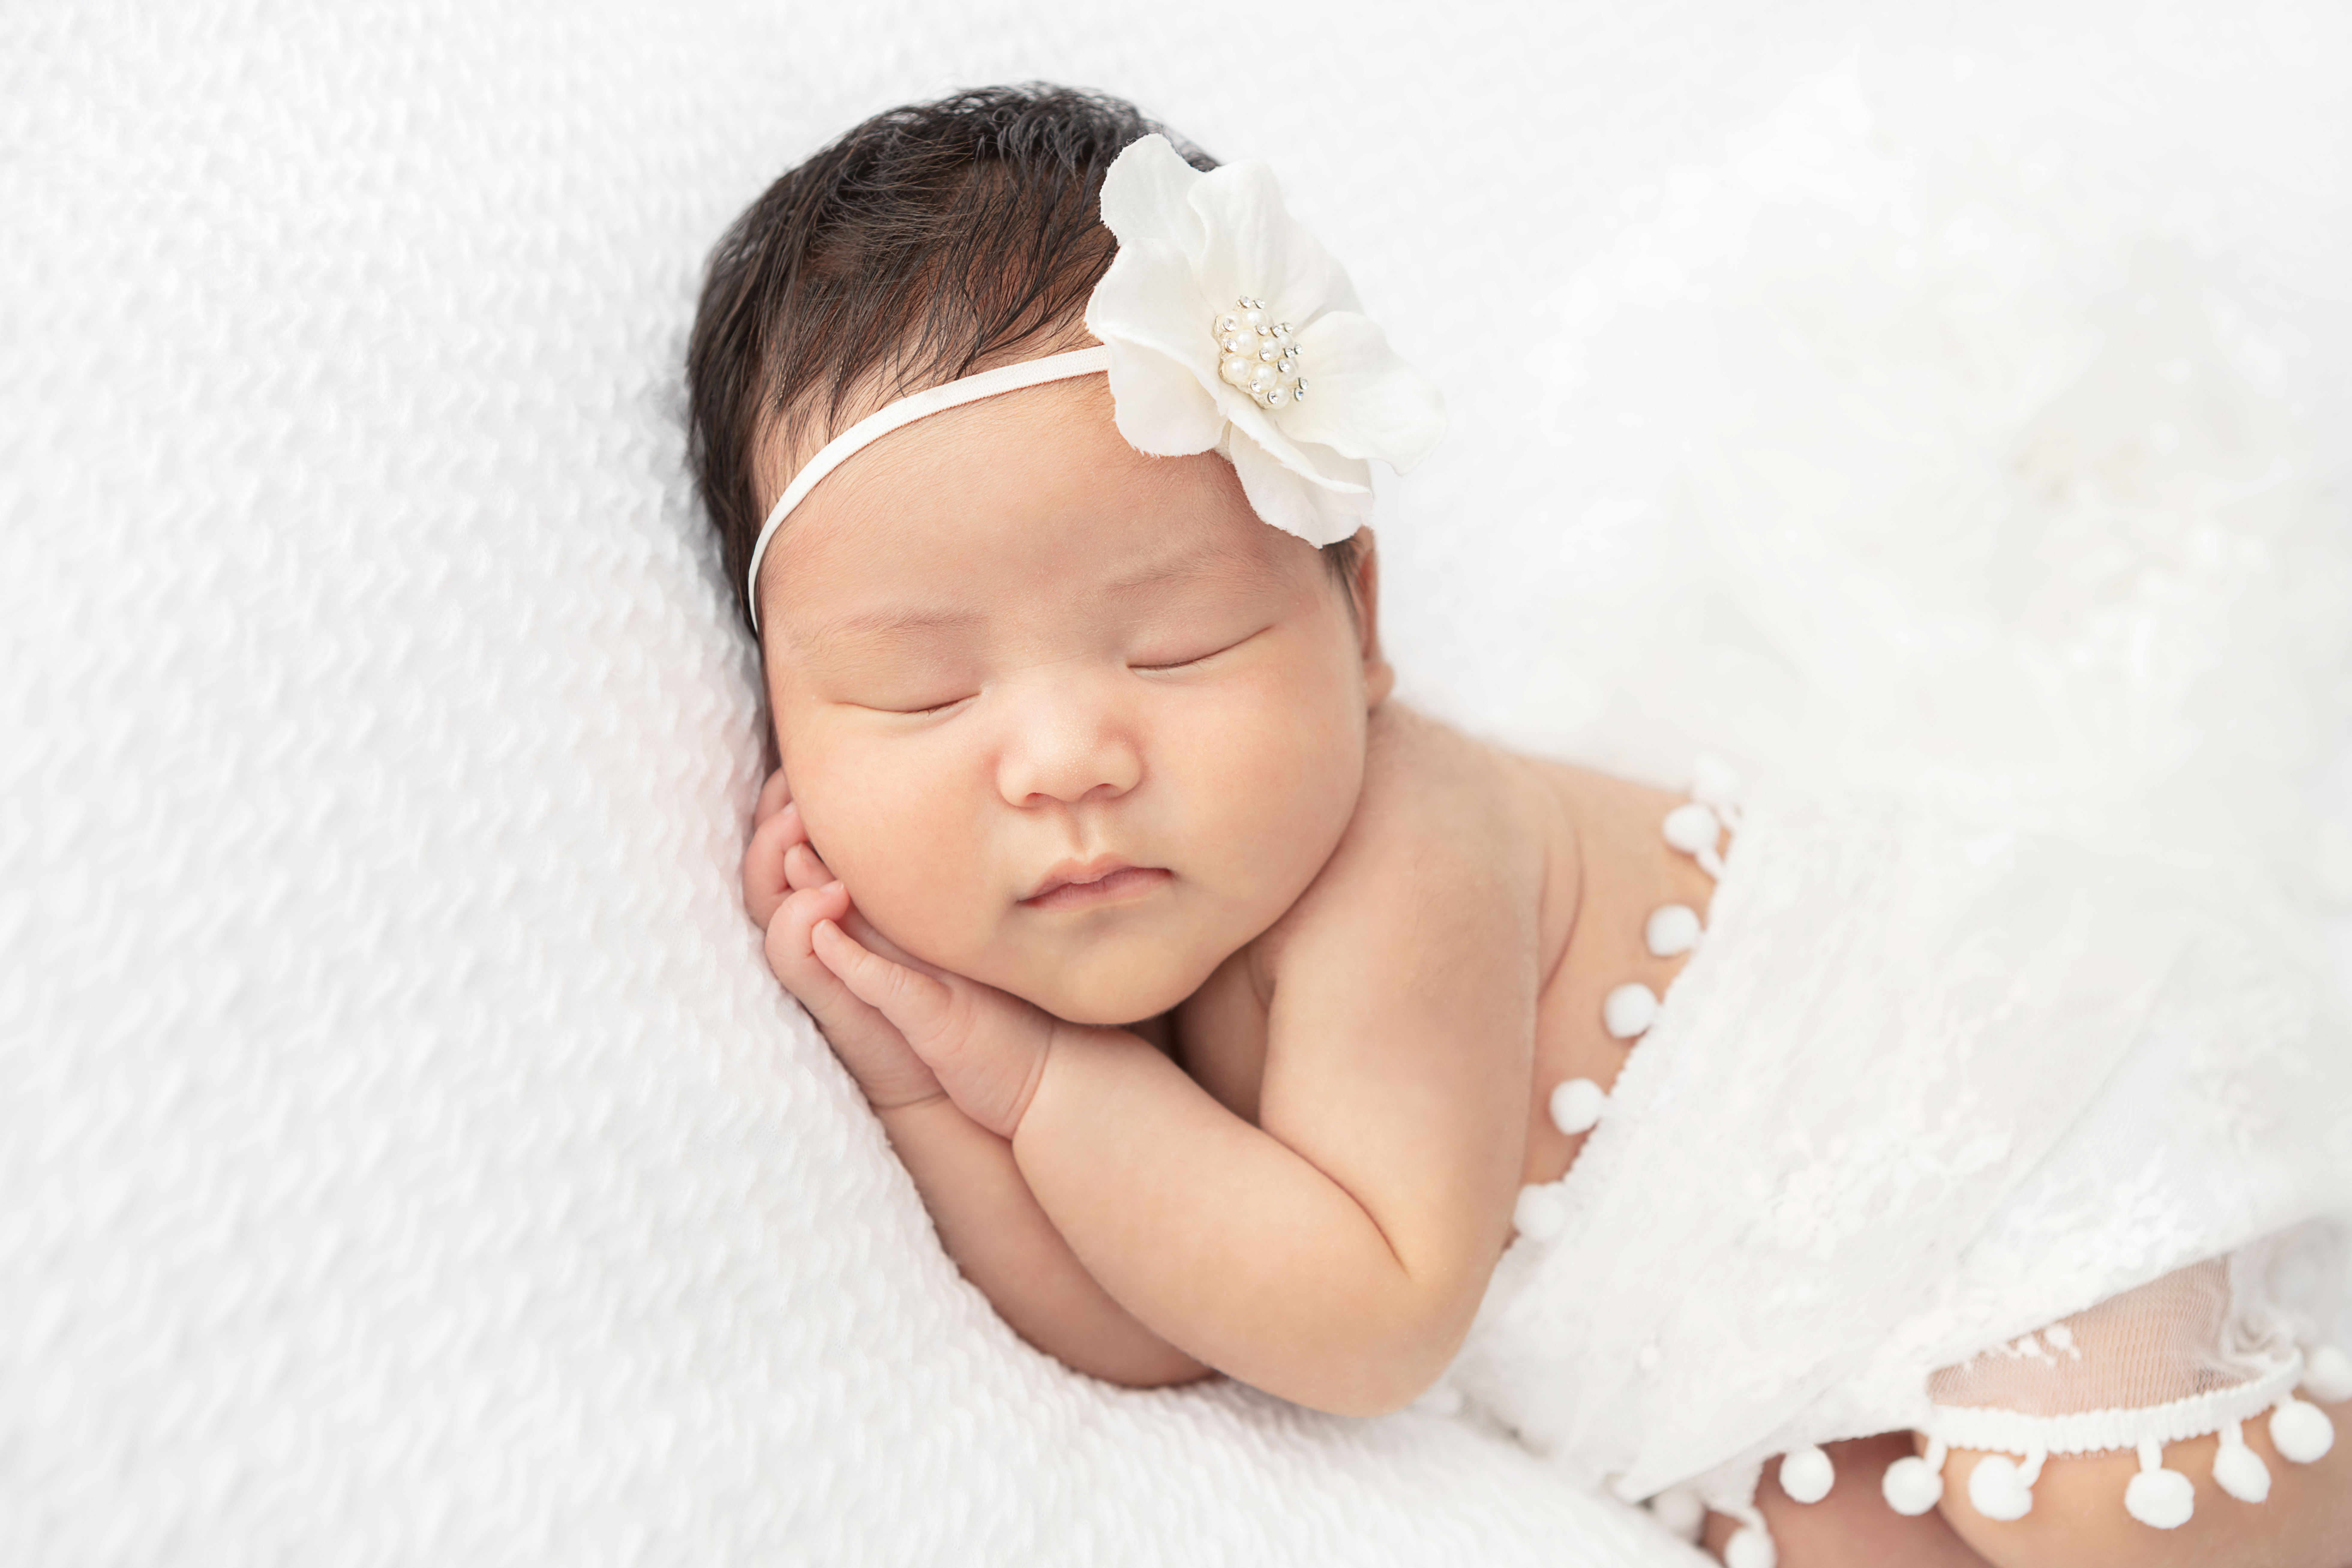 baby newborn girl with lots of dark hair wearing a large floral white headband